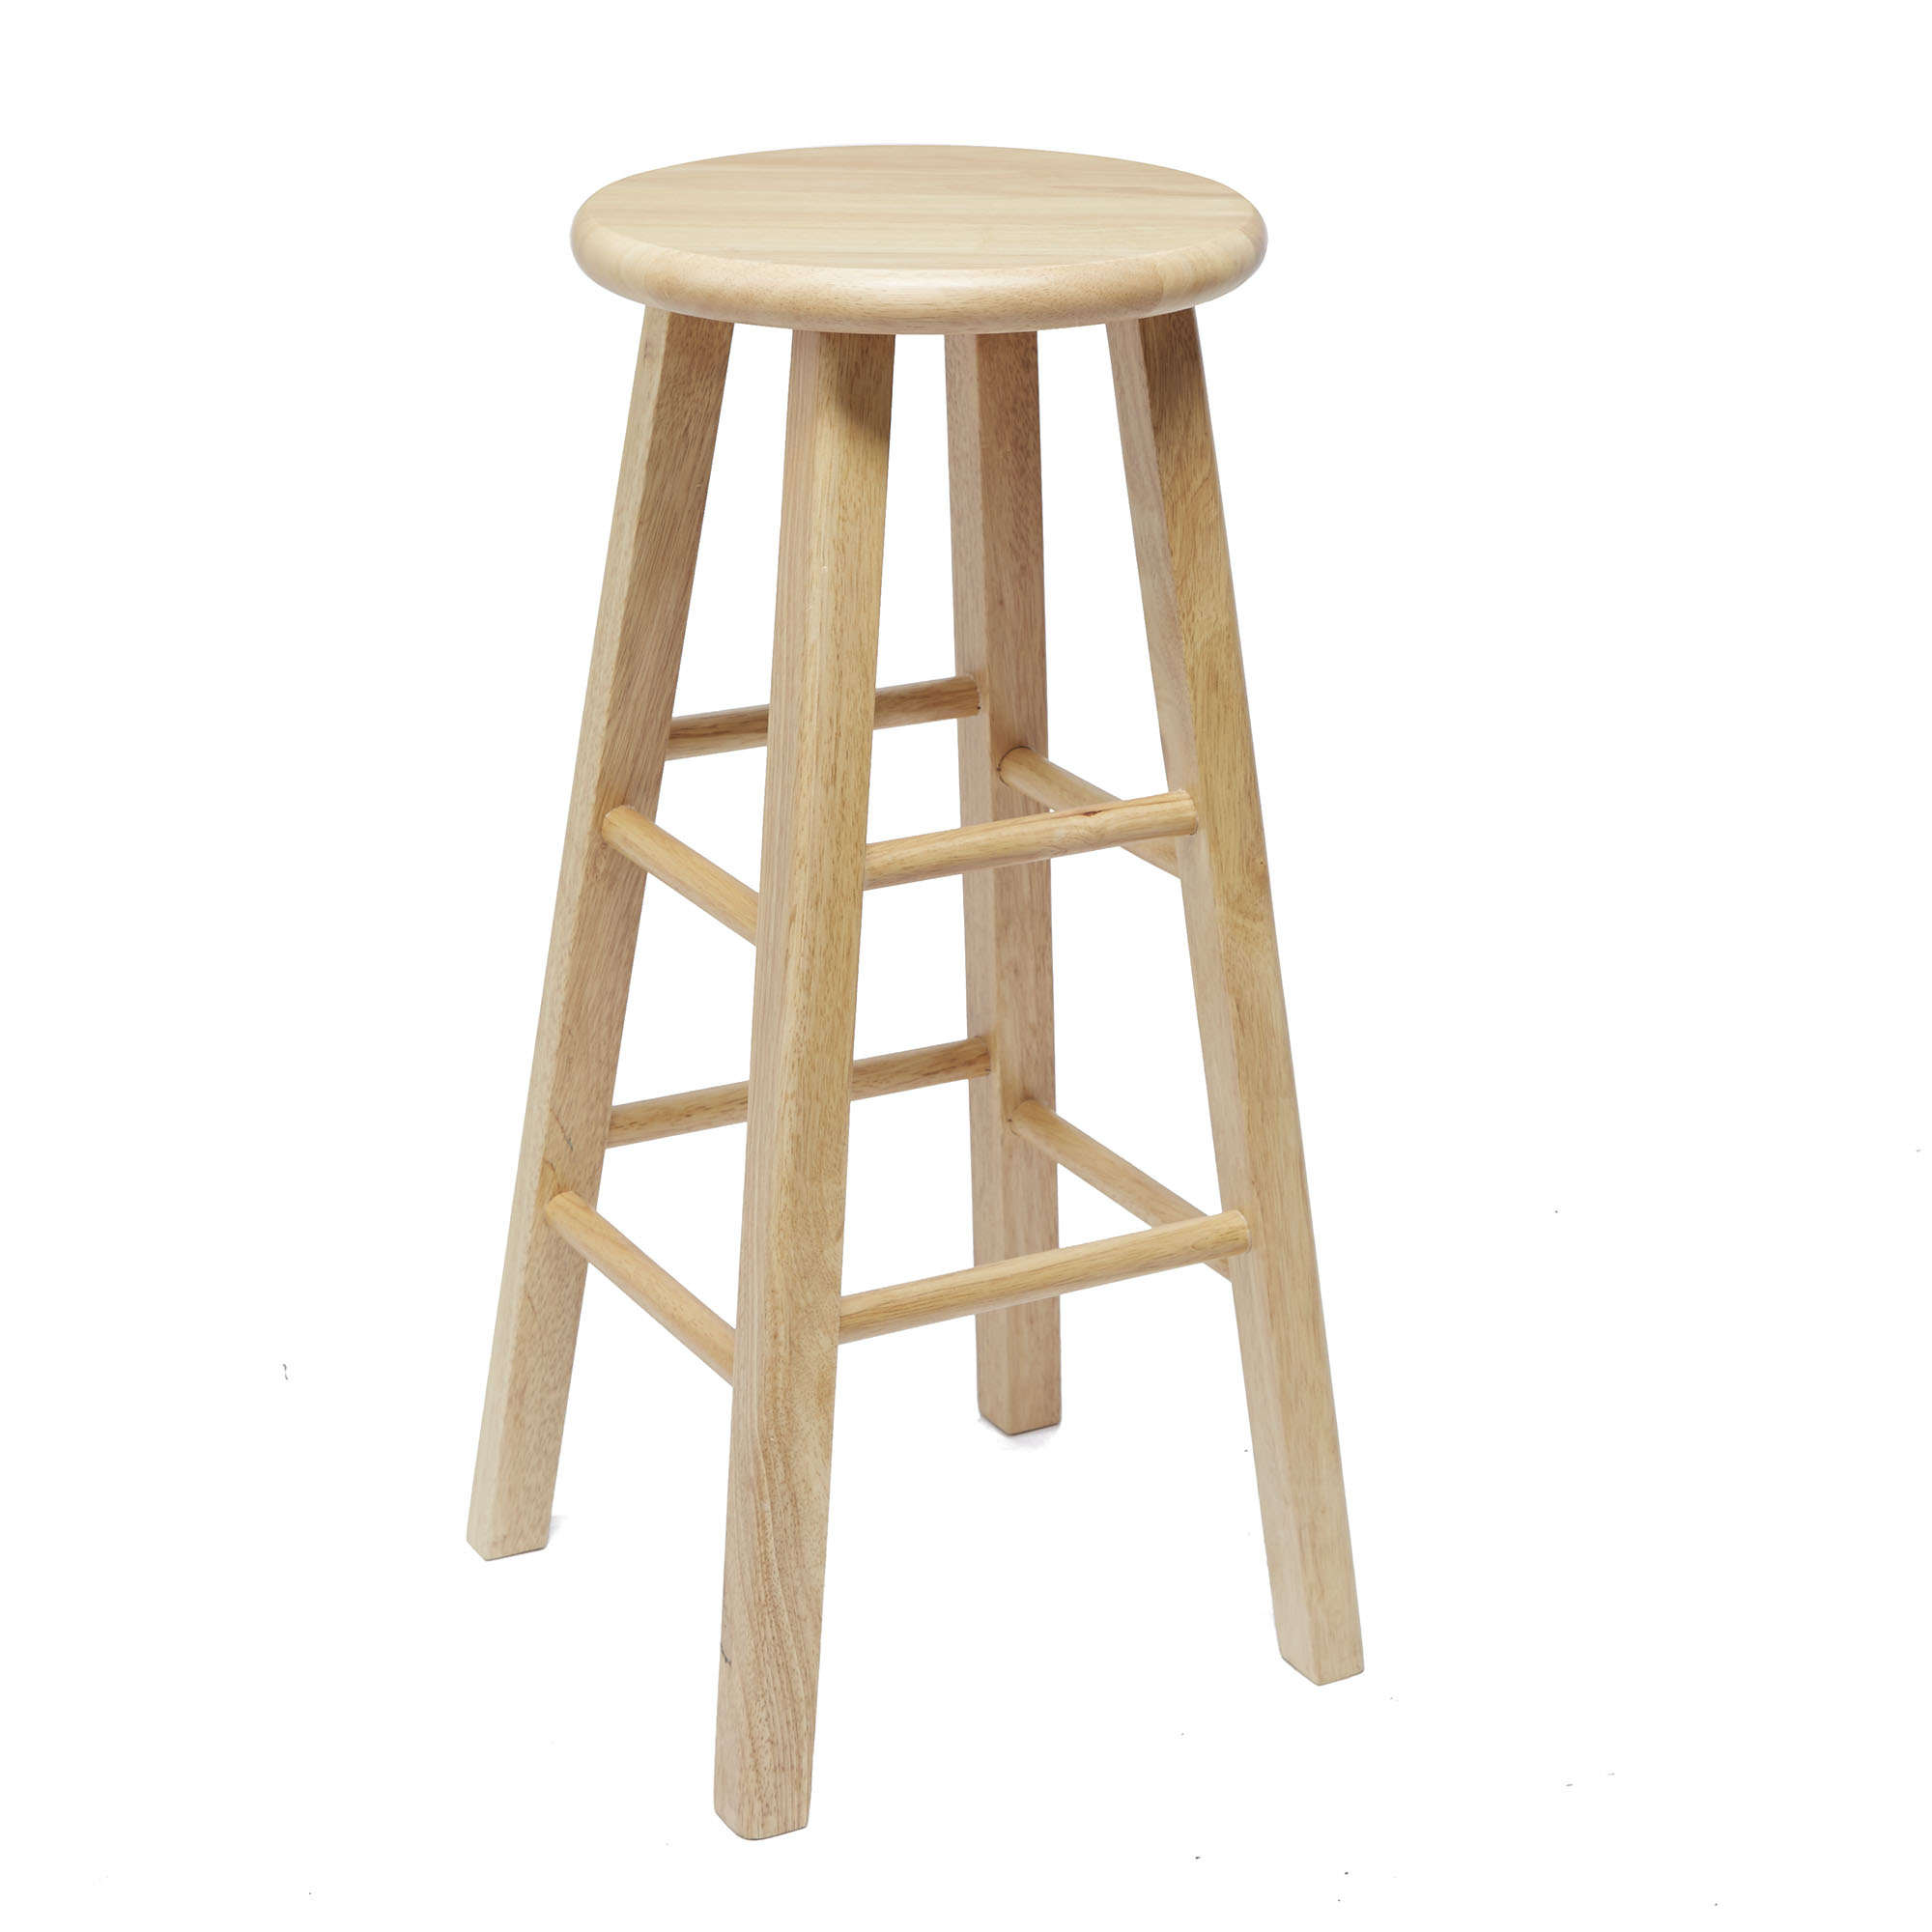 Walmart Wooden Bar Stools Amp Bar Stool Walmart Counter